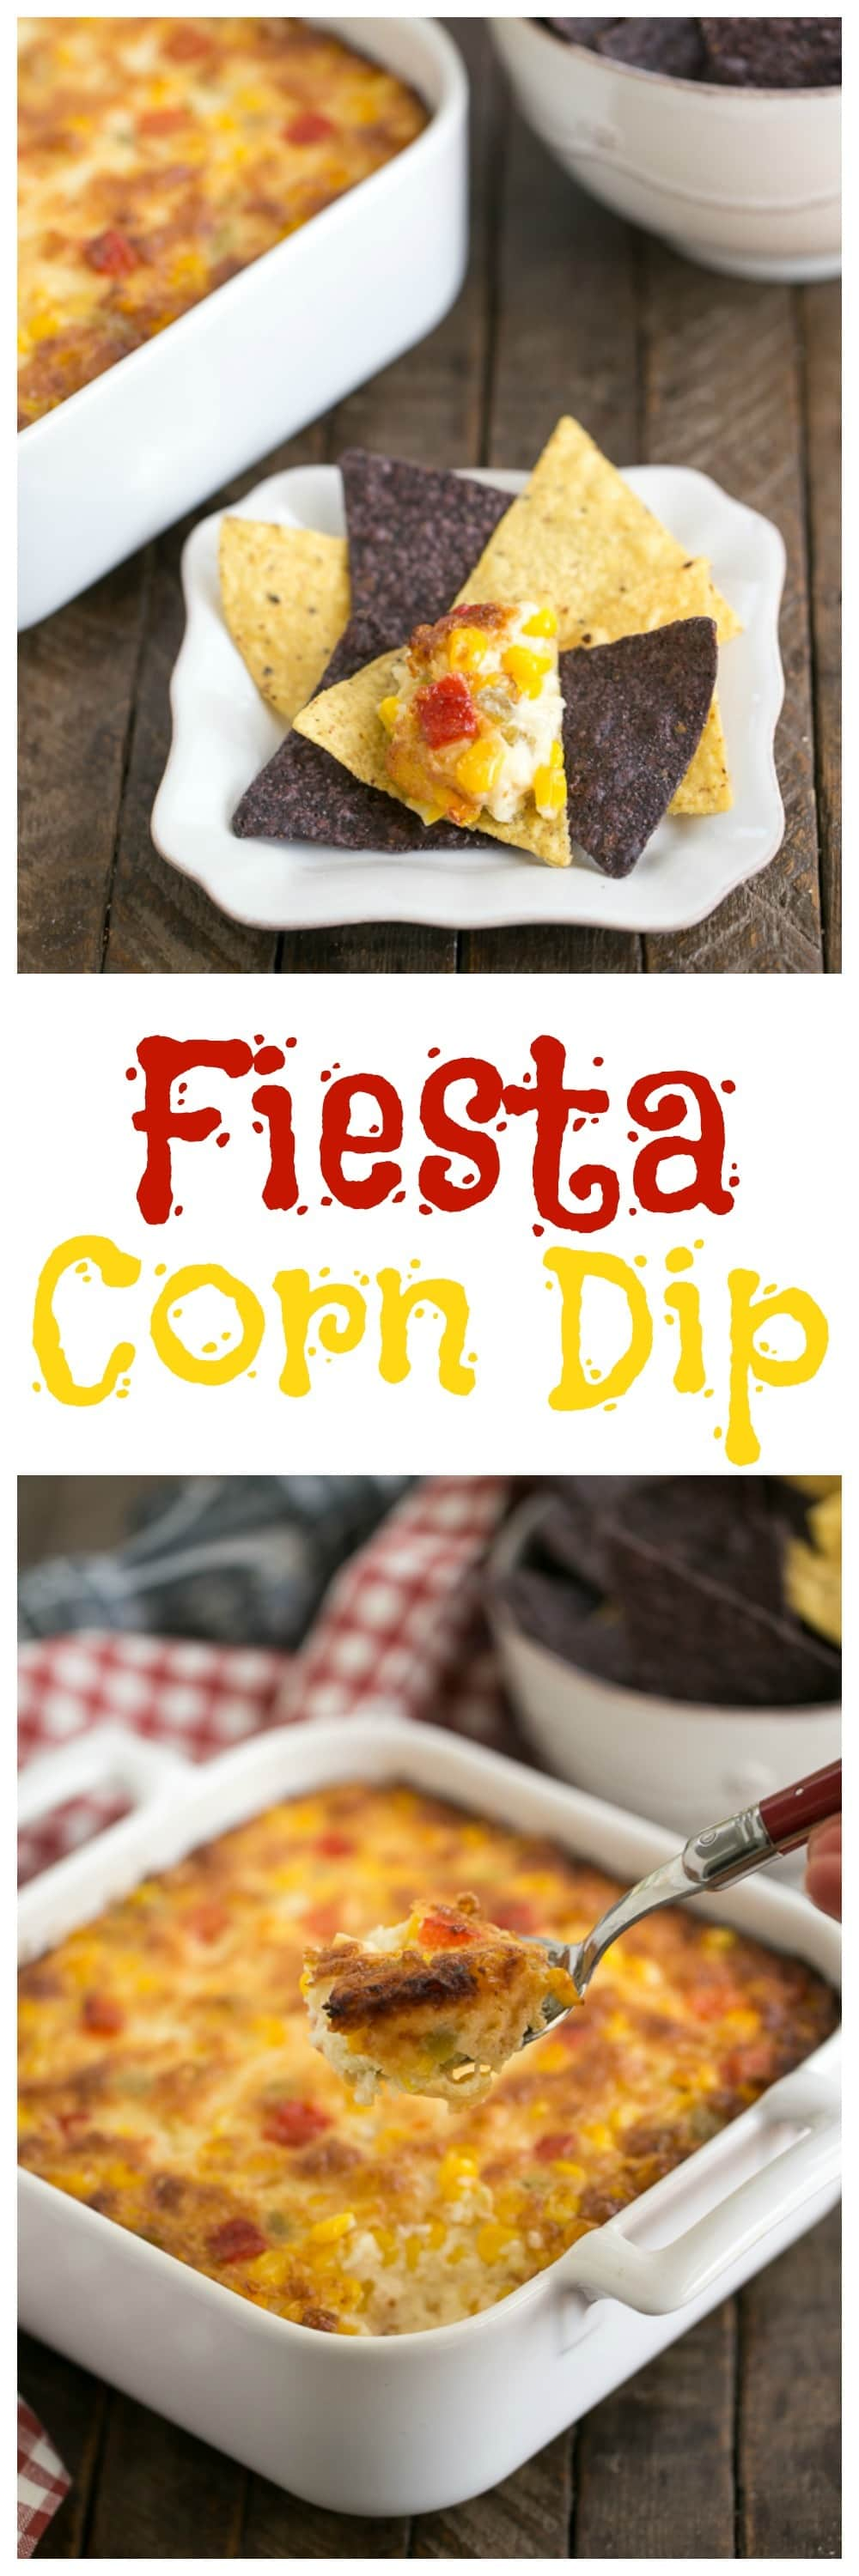 Fiesta Corn Dip - With a double dose of gooey cheese, you'll want to serve this magnificent dip at every gathering! #corndip #cincodemayo #hotdip #cheesedip